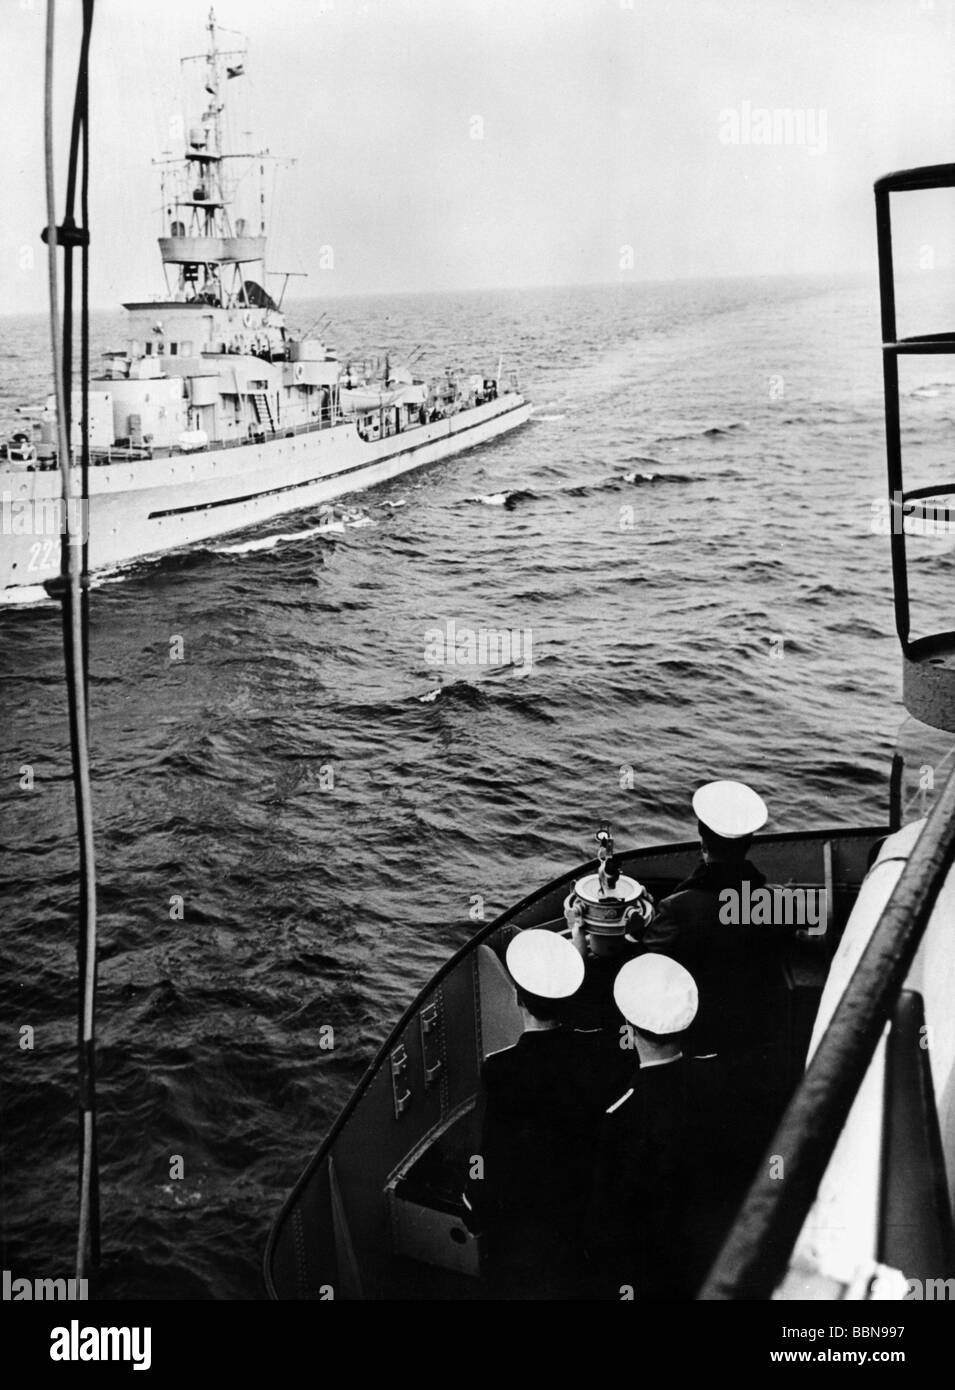 military, East Germany, National People's Navy, mneswaepers during excercise in the Baltic Sea, 1966, Additional - Stock Image